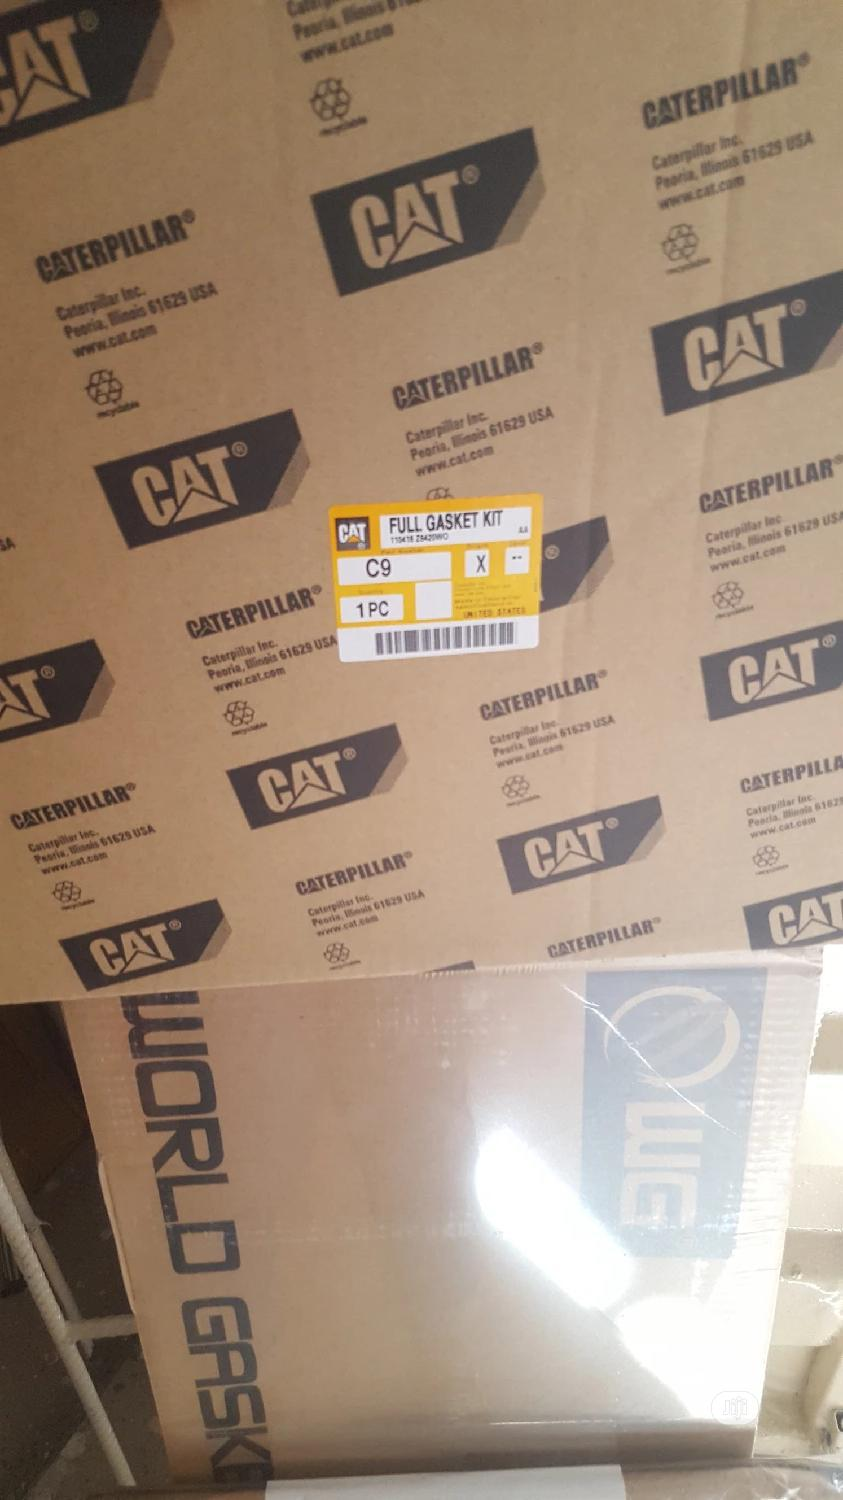 Top Gasket Part C9 Cat For All Caterpillar For Sale In Lagos